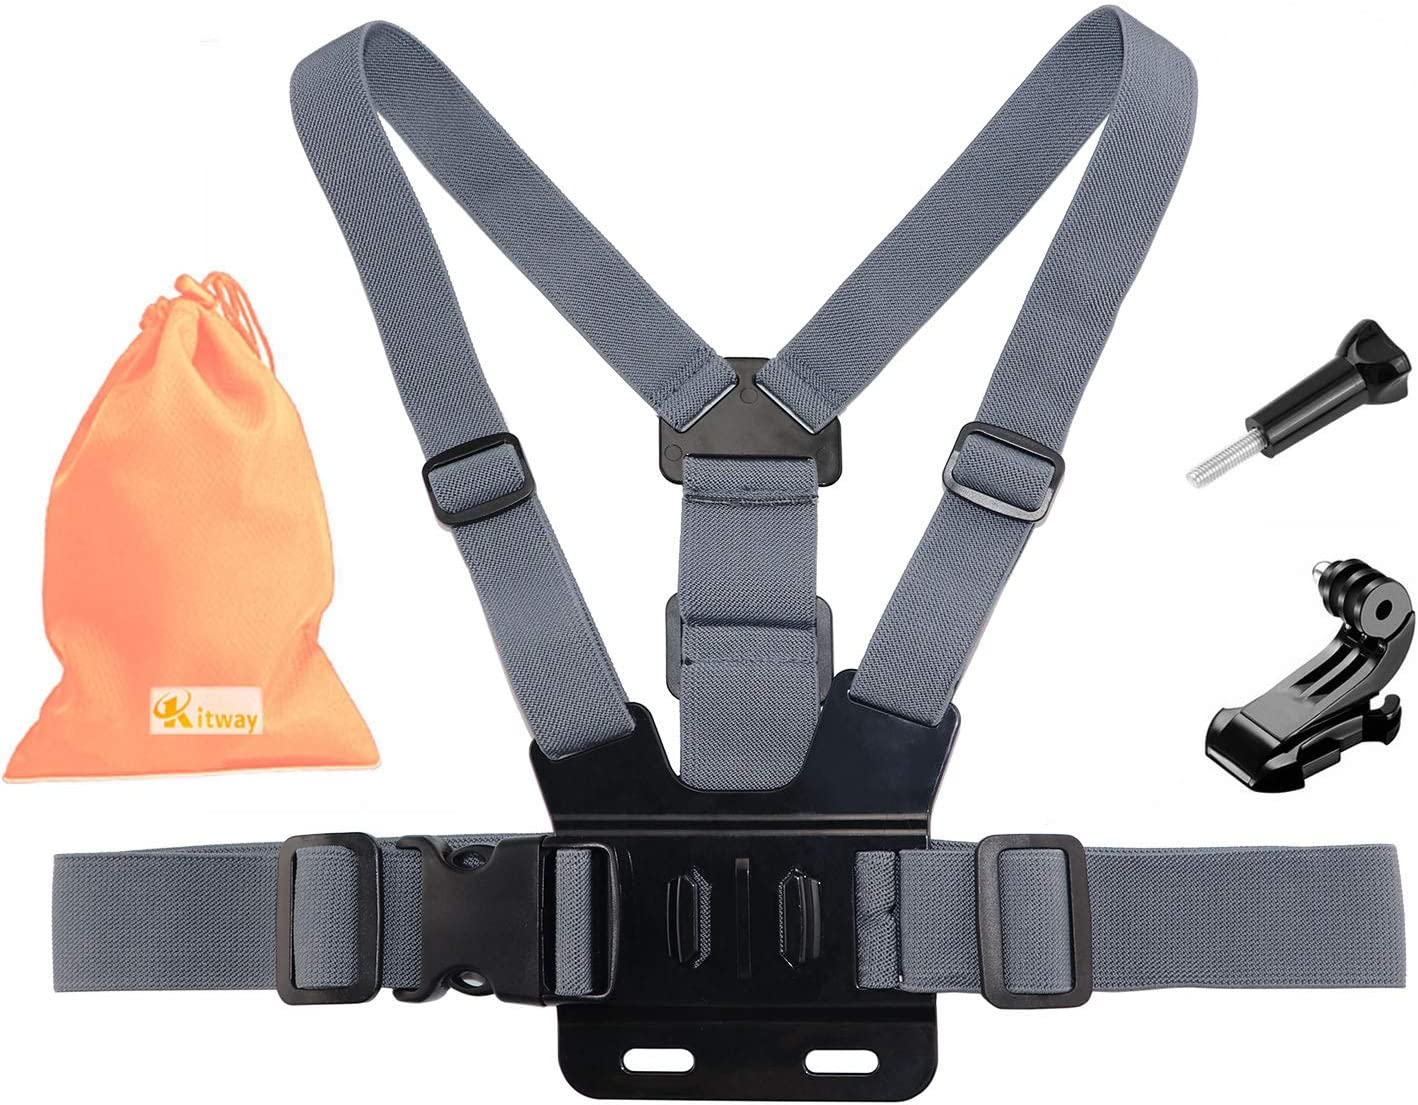 Kitway Chest Mount Harness Elastic Adjustable Actio Strap San Francisco Mall All stores are sold